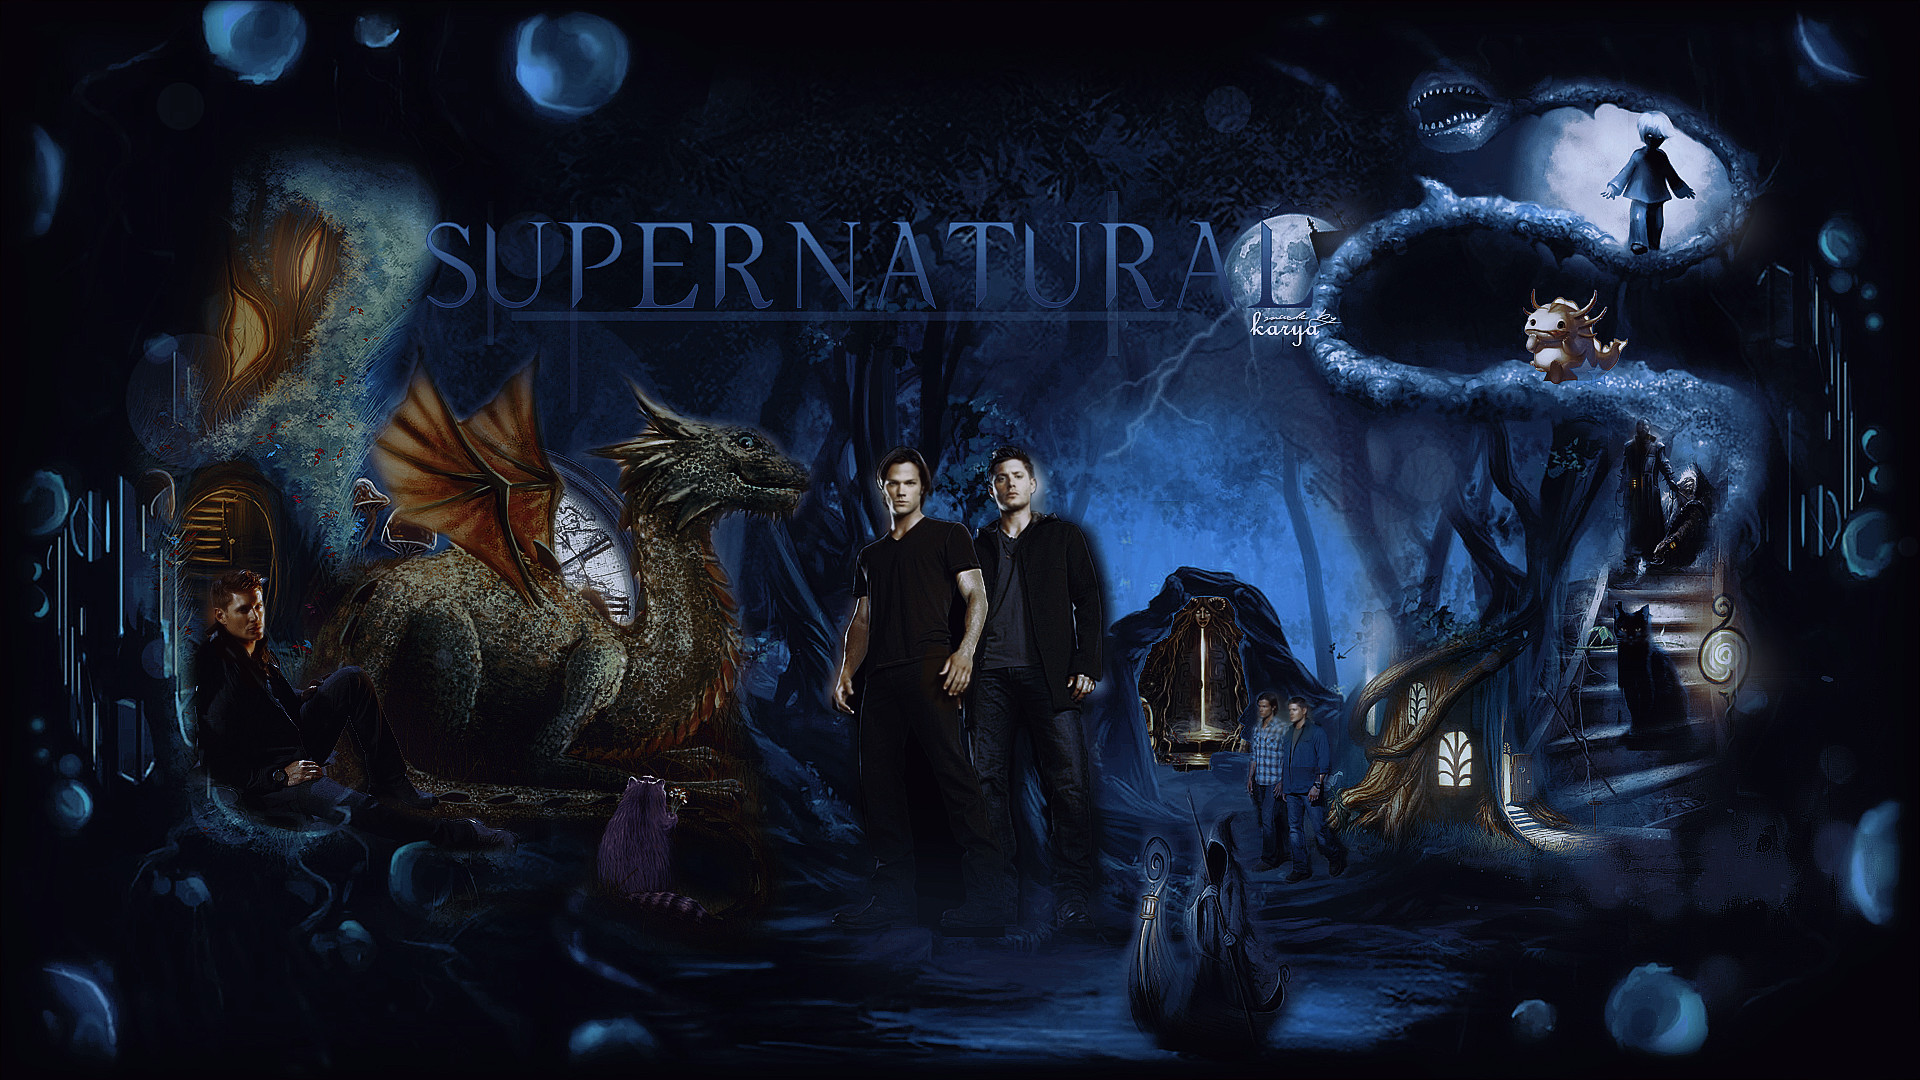 1920x1080 supernatural wallpaper hd movies